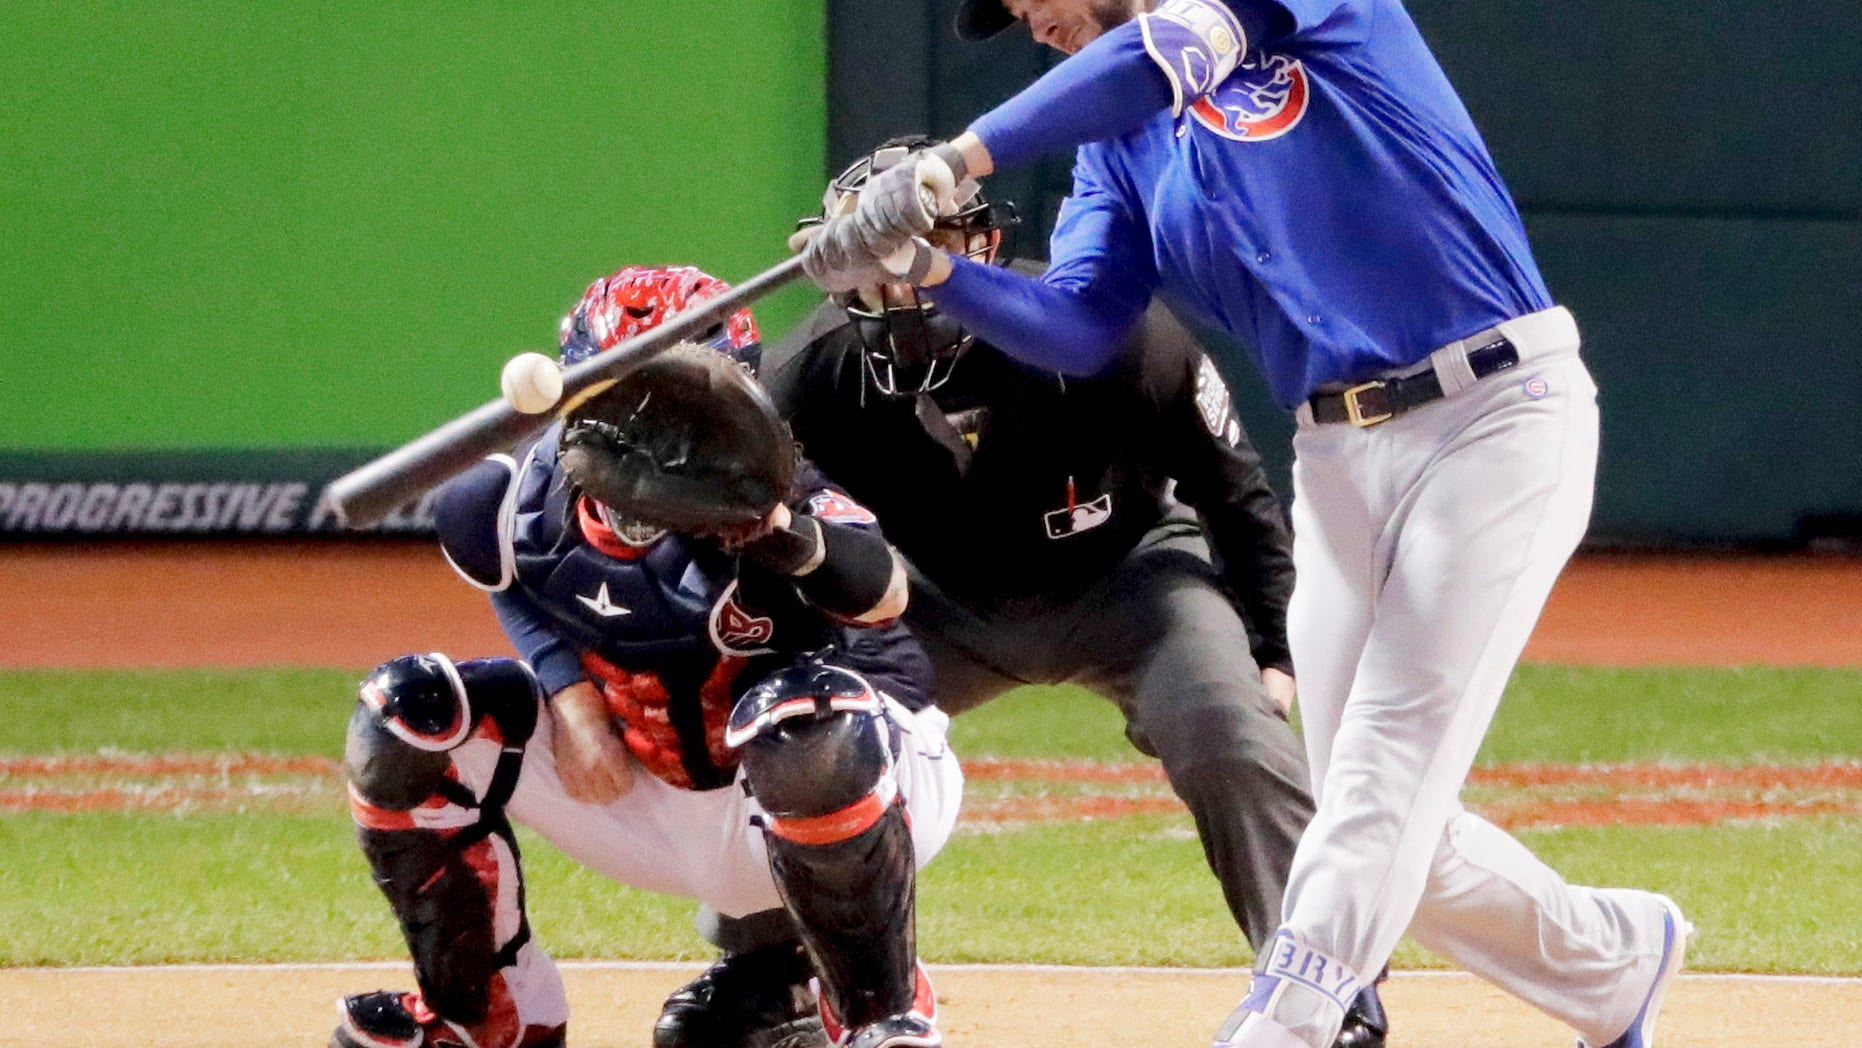 Chicago Cubs' Kris Bryant hits a single during the first inning of Game 2 of the Major League Baseball World Series against the Cleveland Indians Wednesday, Oct. 26, 2016, in Cleveland. (AP Photo/Charlie Riedel)